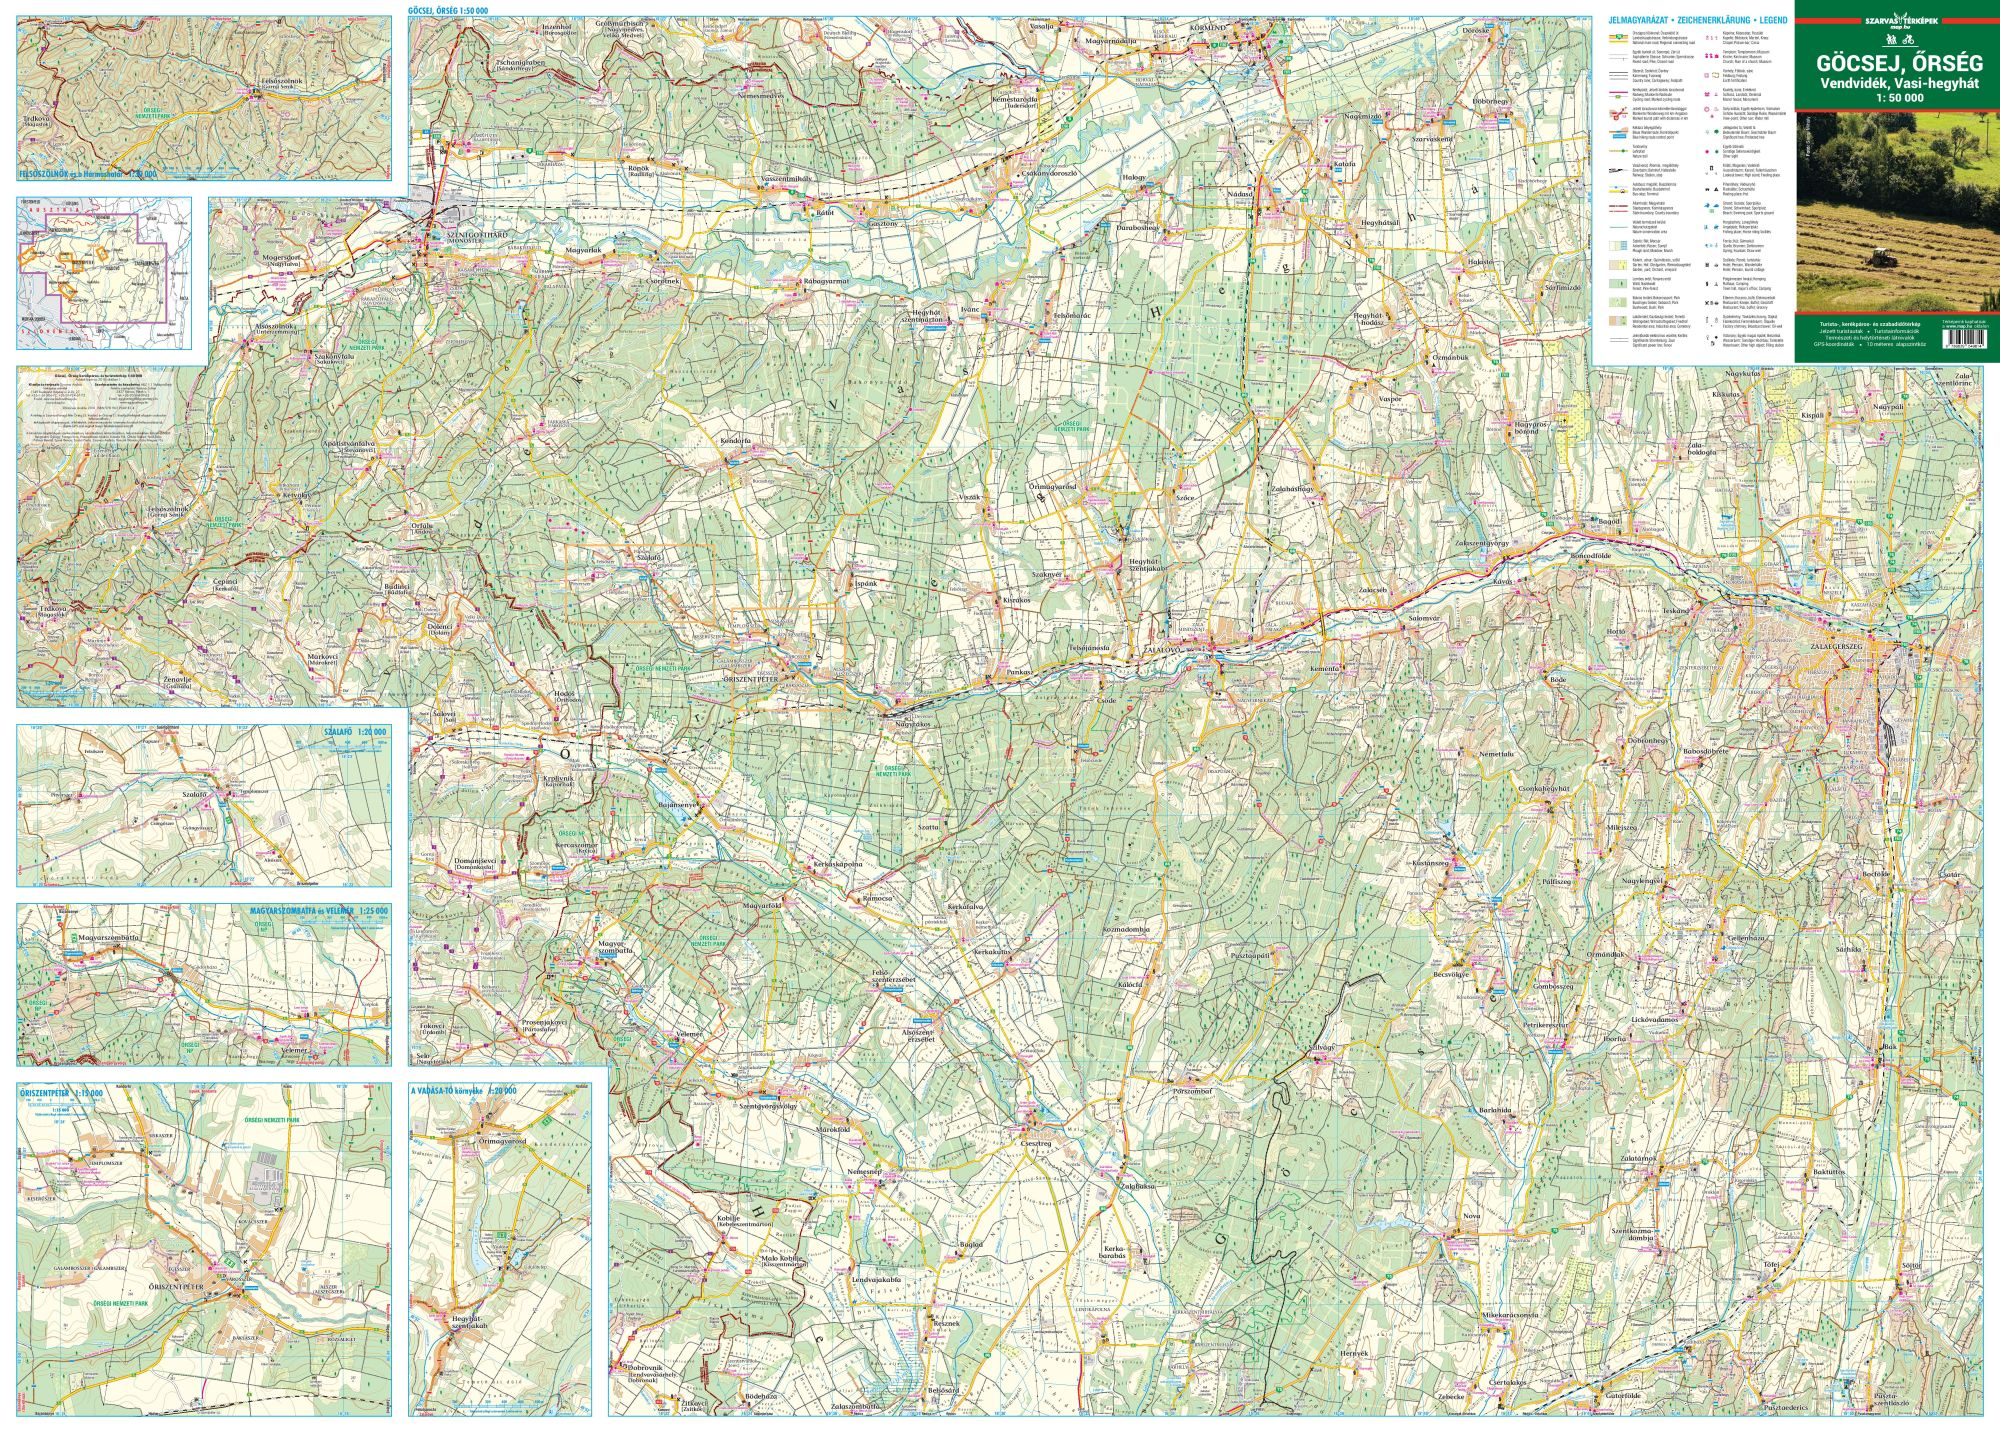 Detailed tourist-biking map for mobile devices